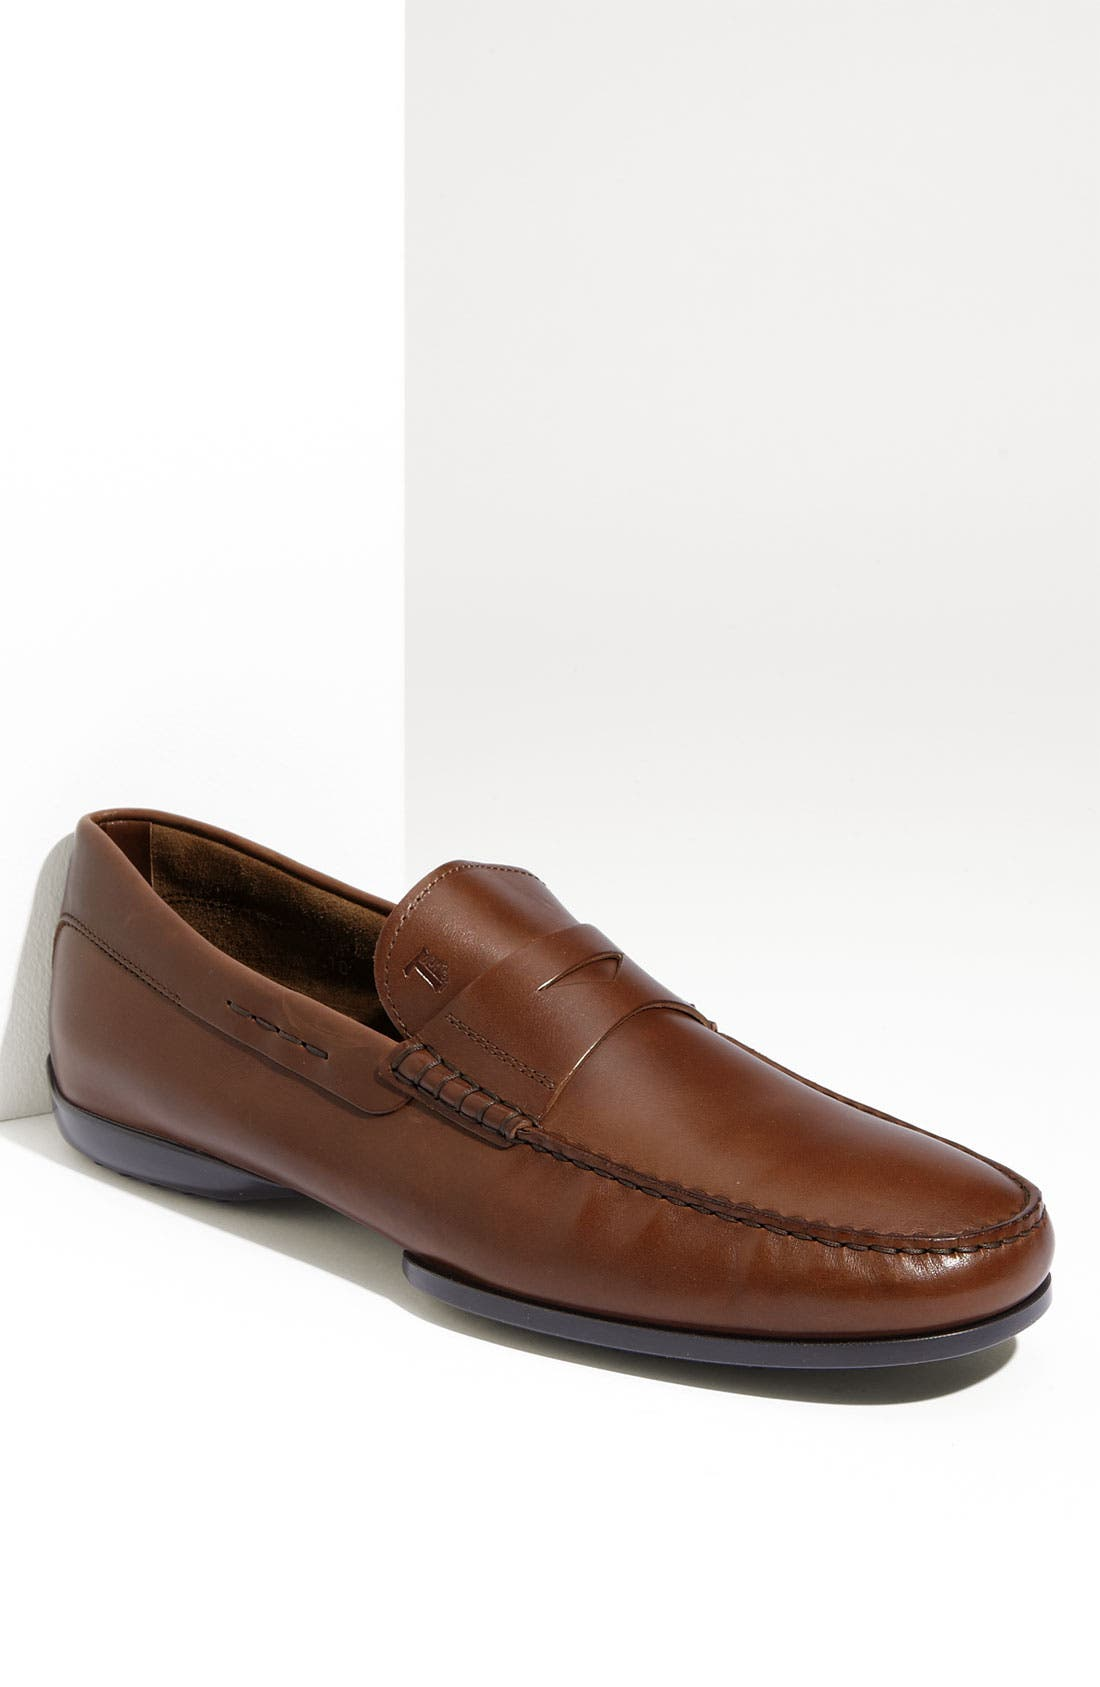 'Brooklyn' Penny Loafer, Main, color, 200